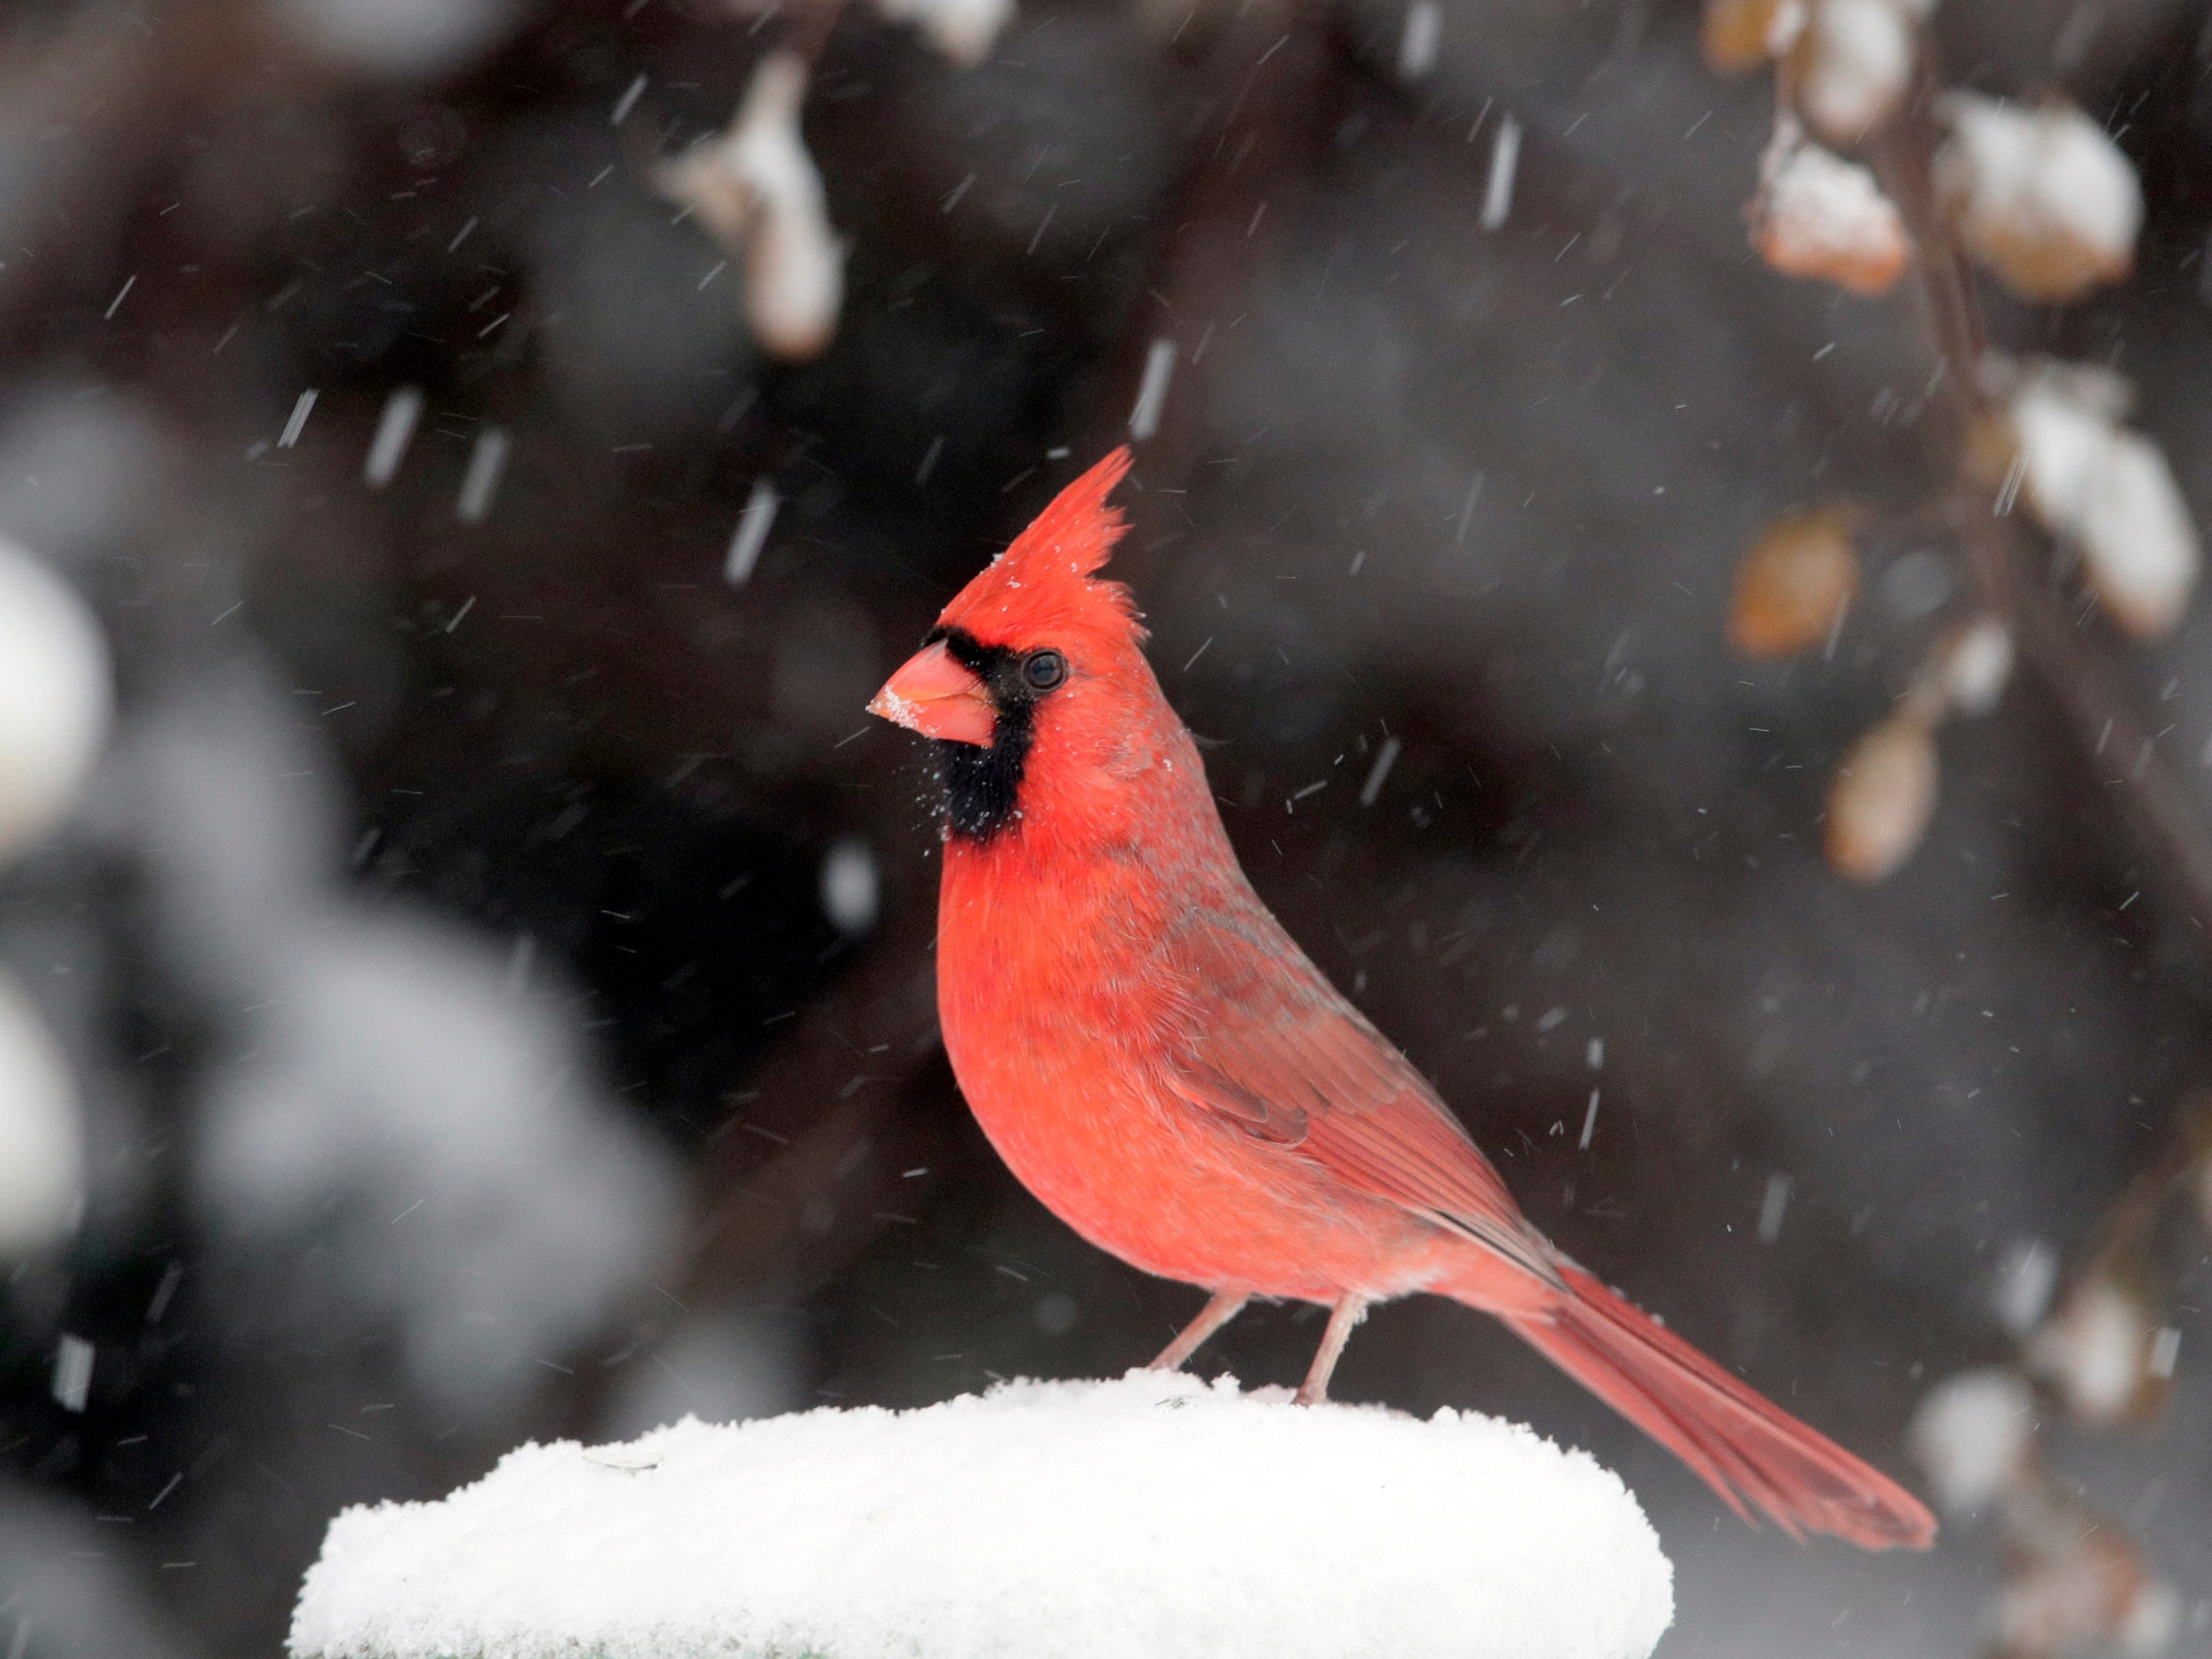 A cardinal stands on a snow-covered perch in Lawrence, Kan., Nov. 25, 2018.